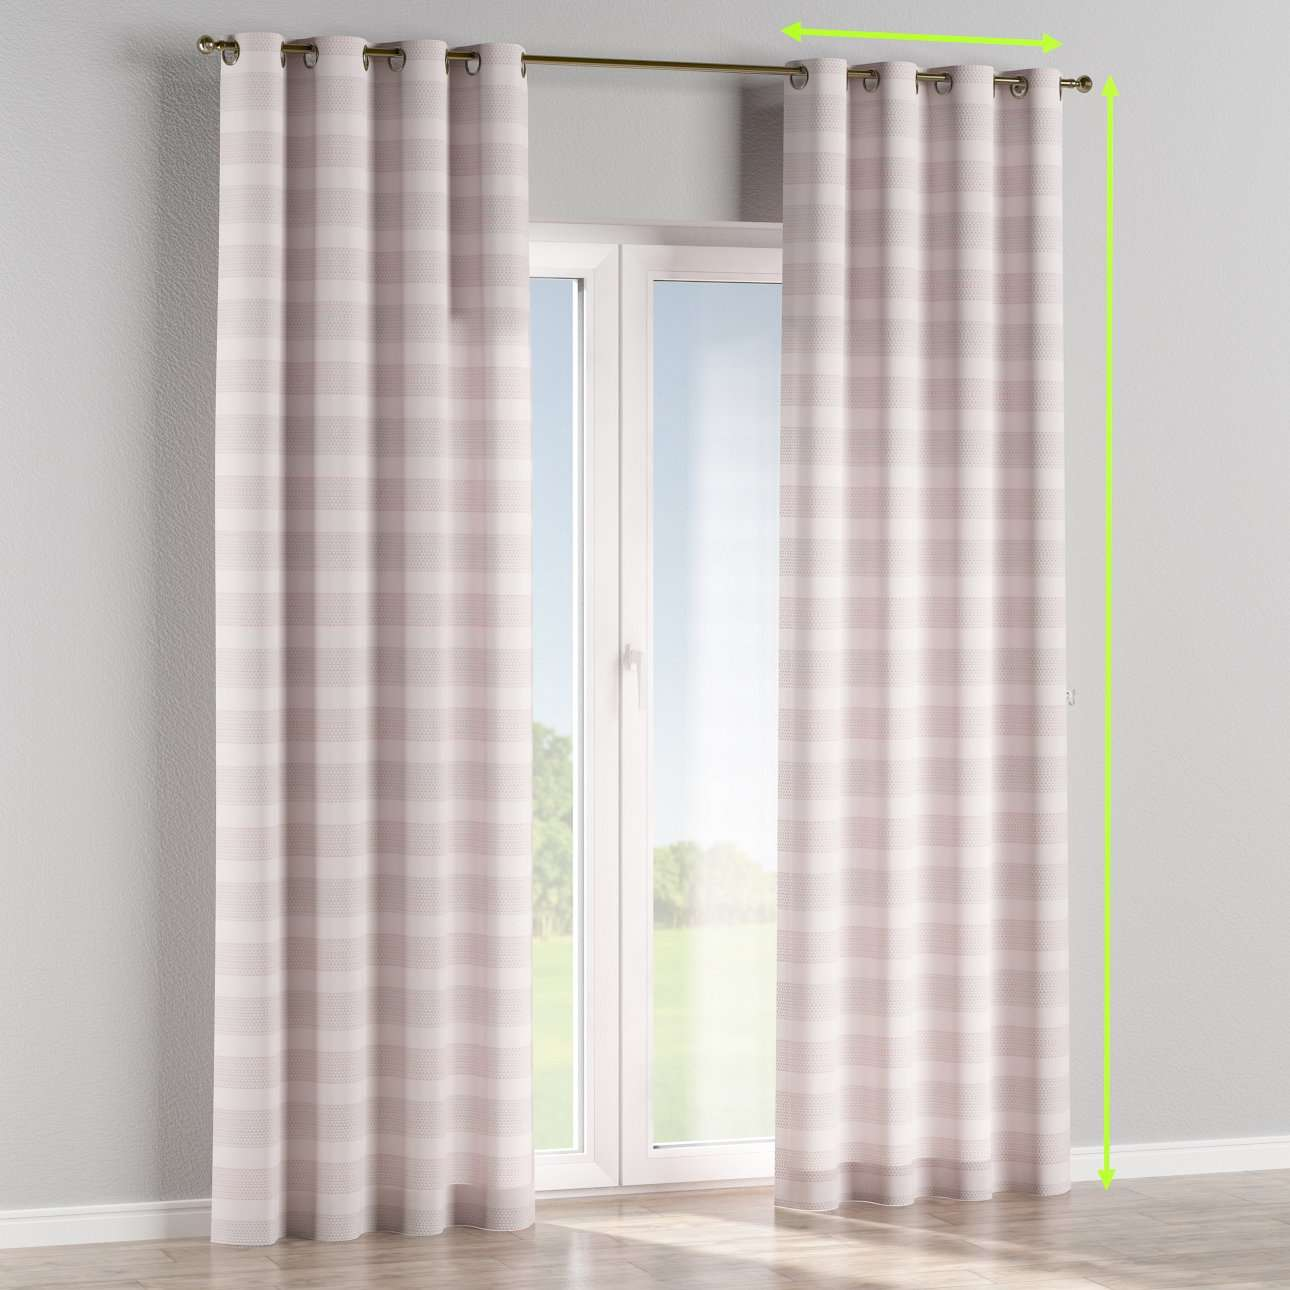 Eyelet curtains in collection Rustica, fabric: 140-29